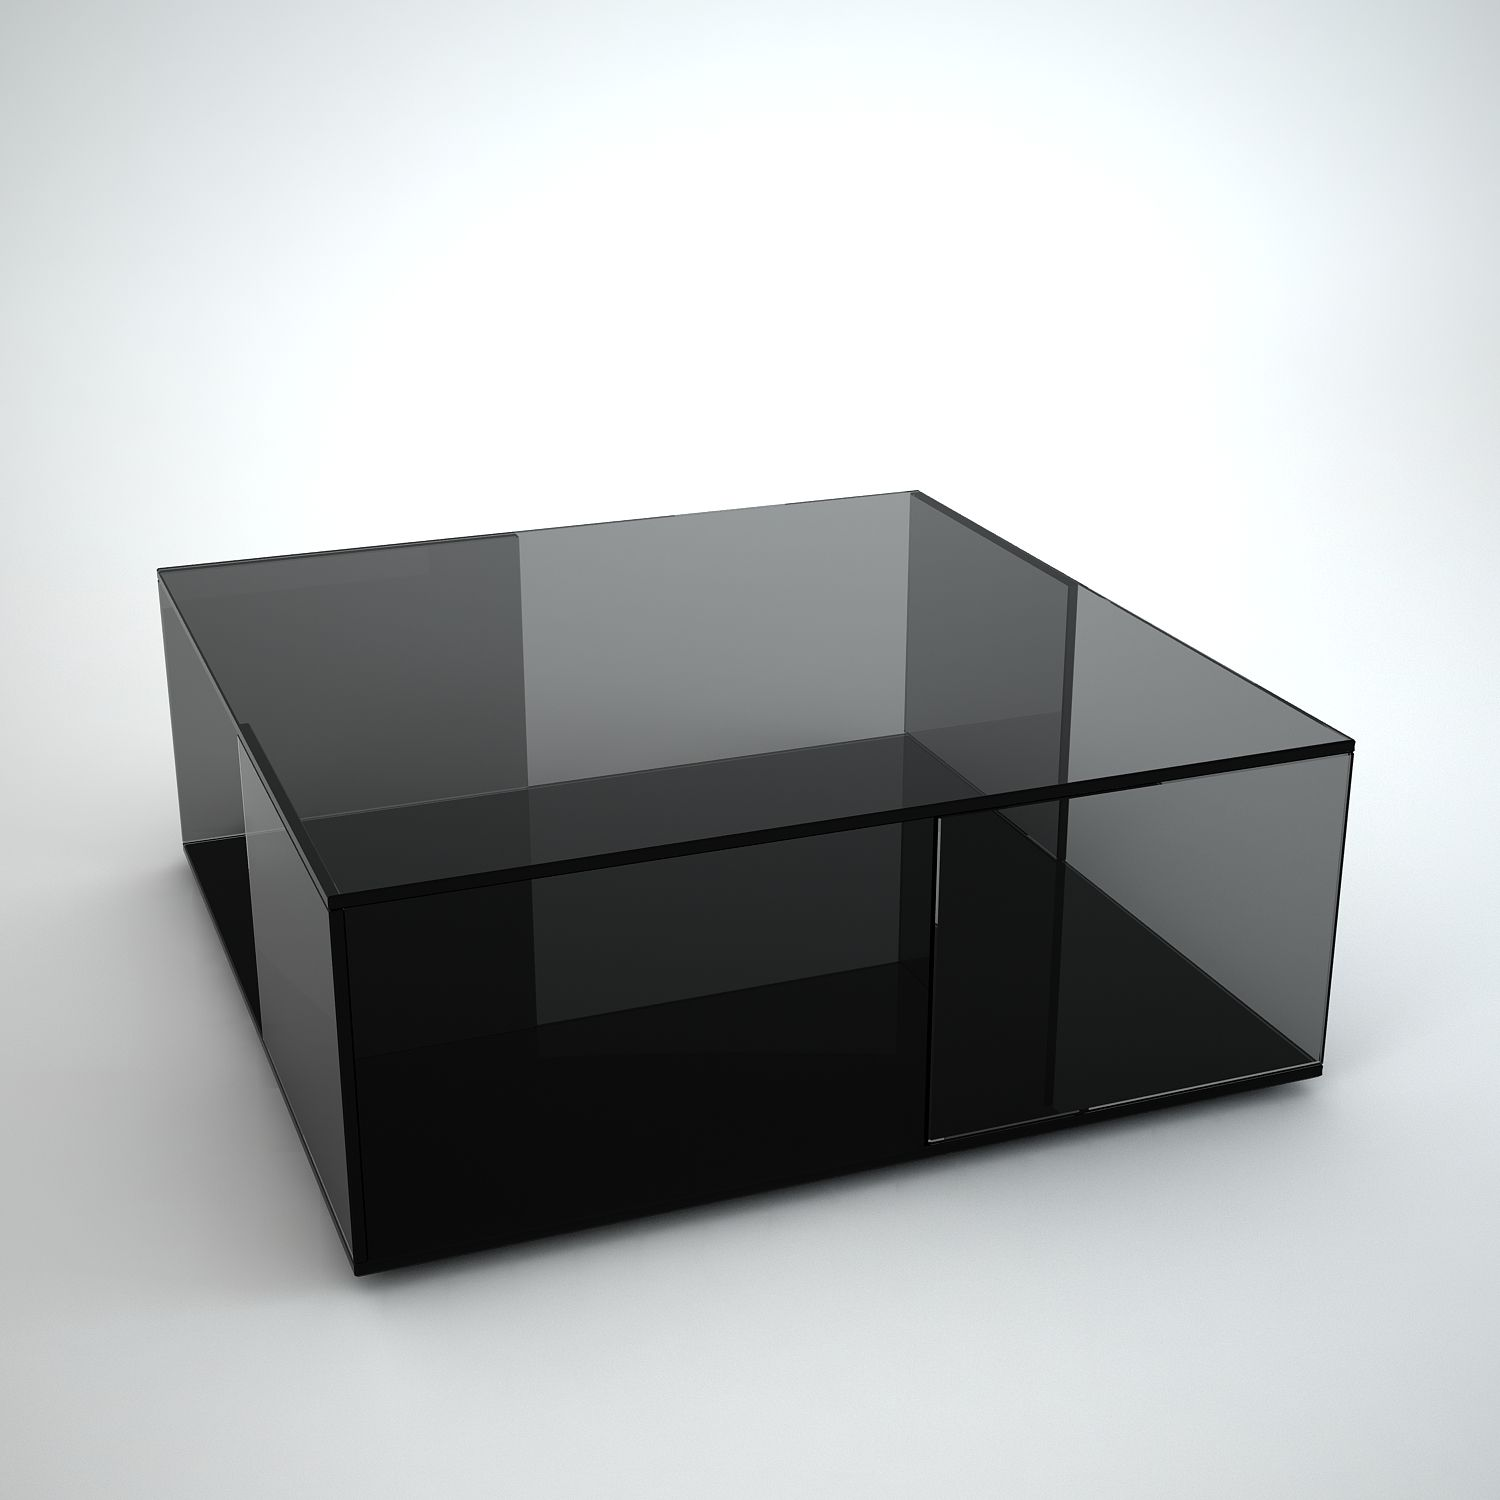 Tifino Square Grey Tint Glass Coffee Table By Klarity Black